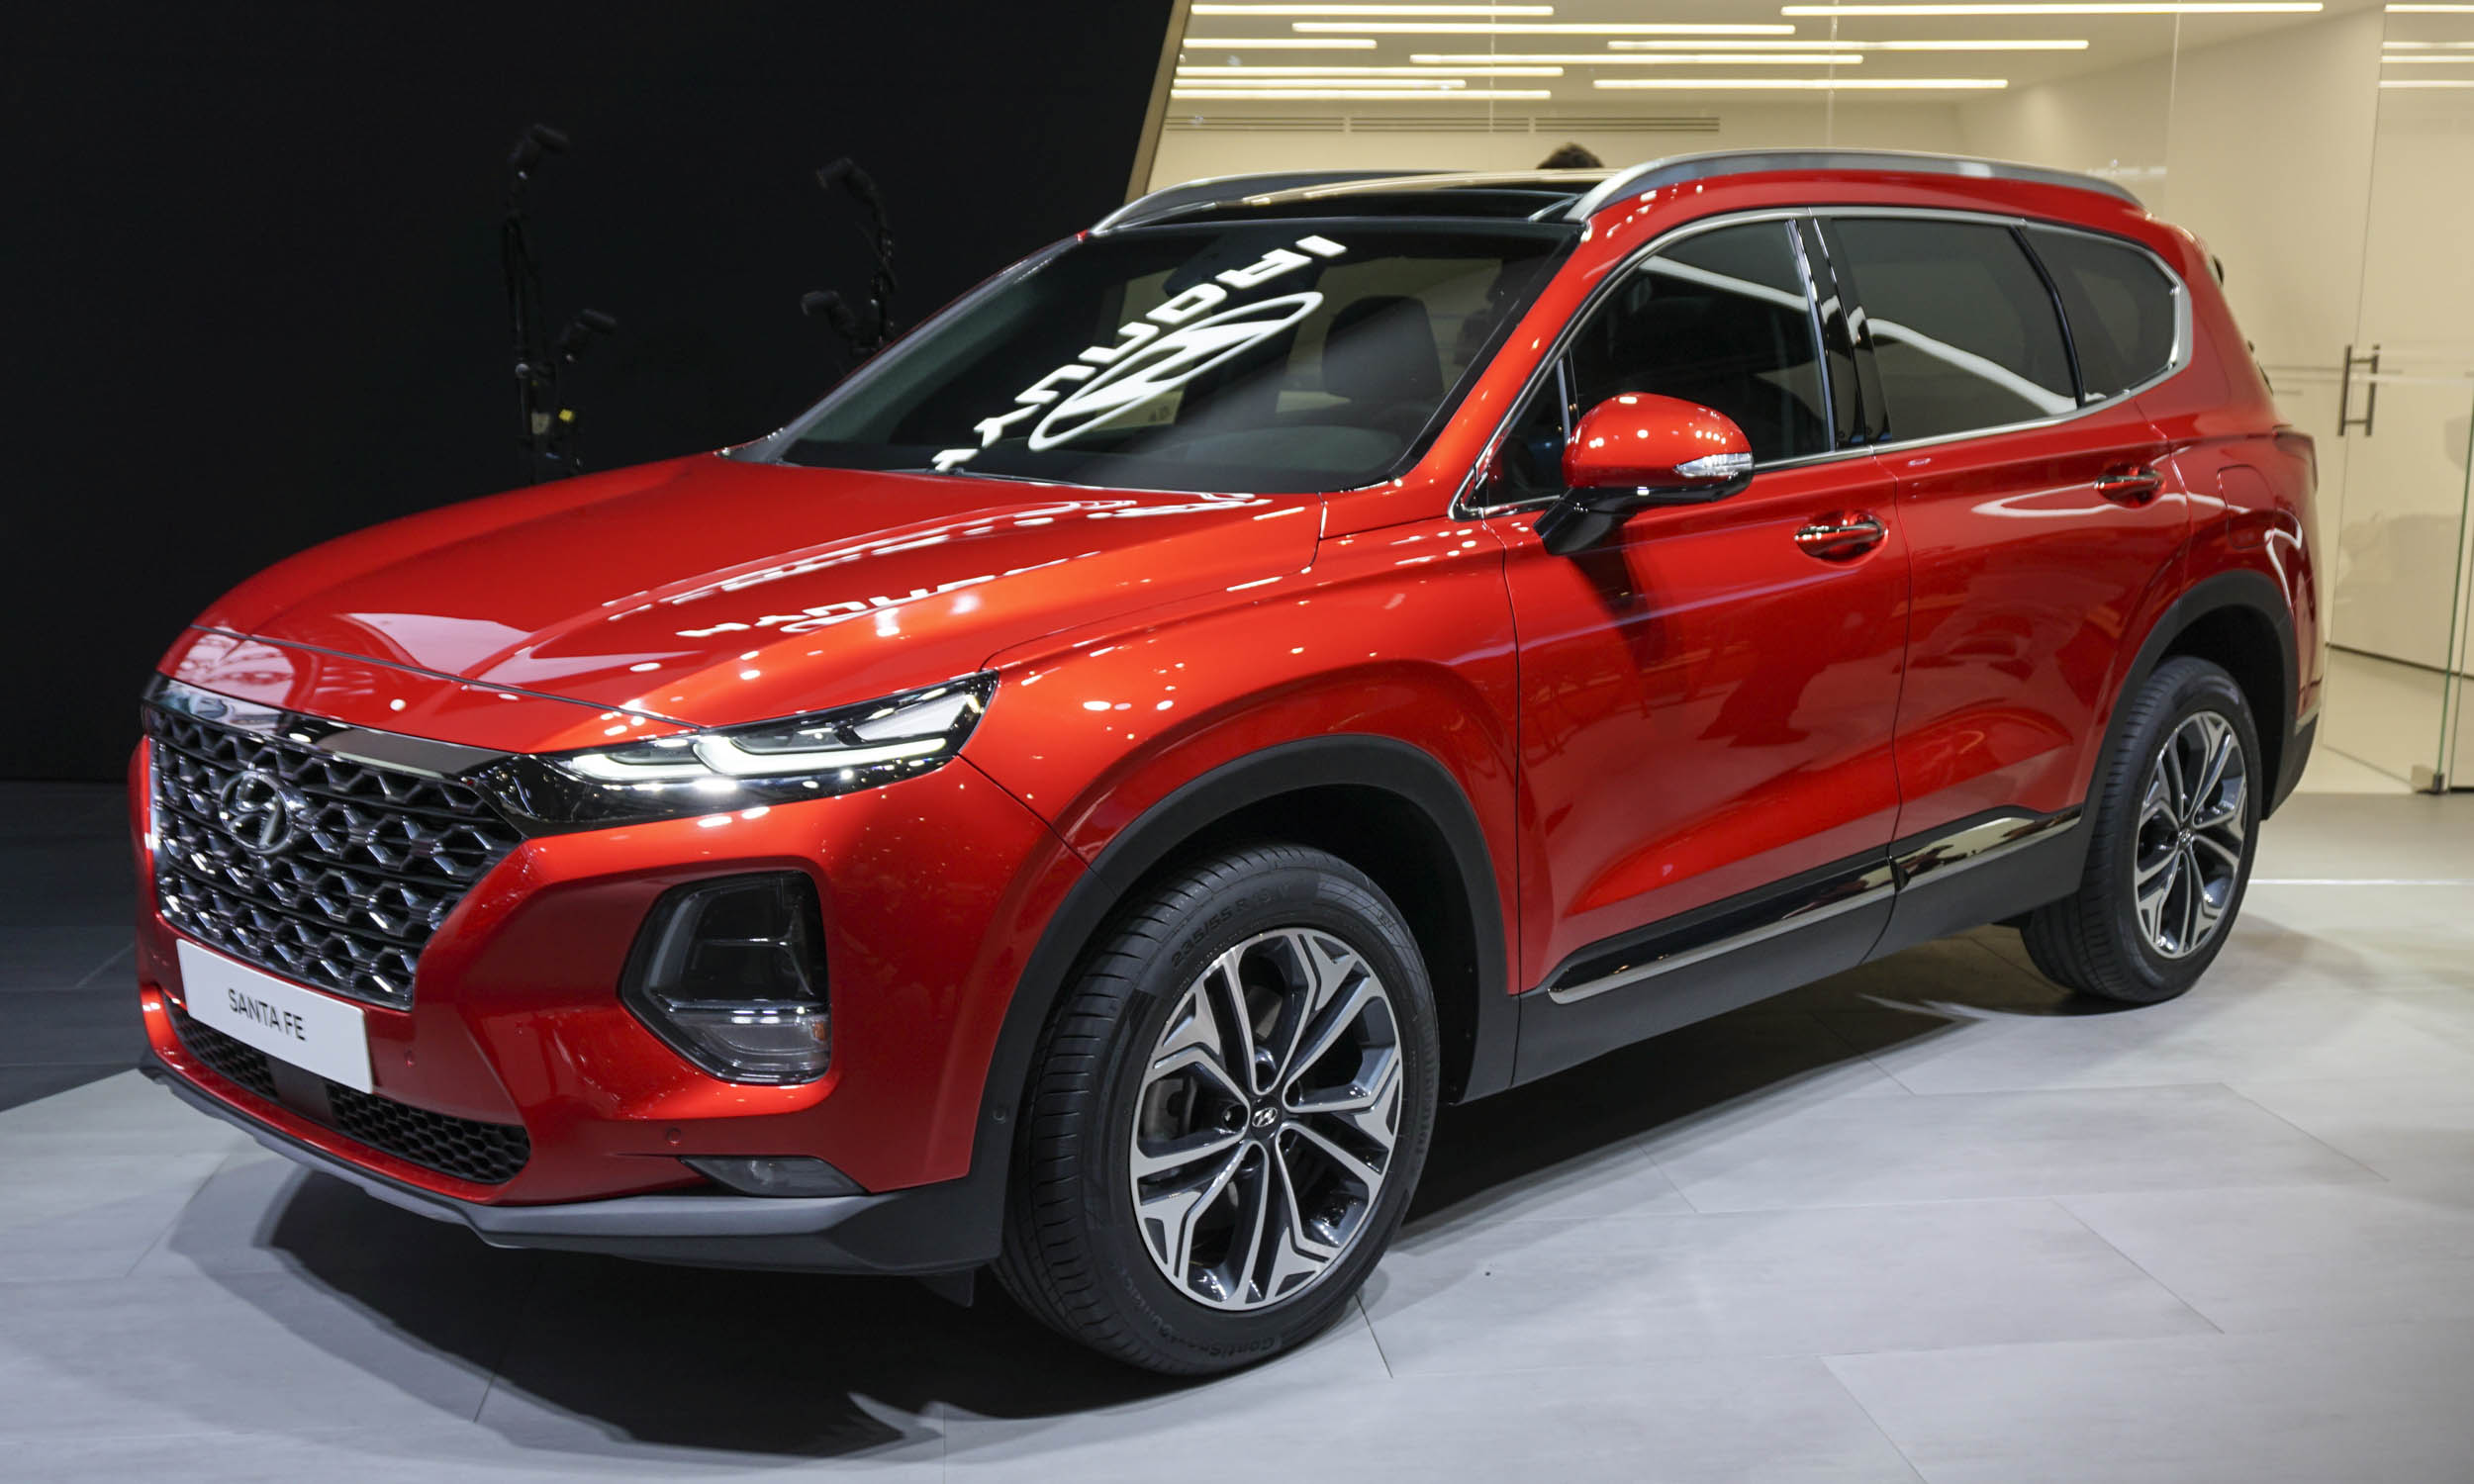 Cars For Sale Los Angeles >> 2018 Geneva Motor Show: Hyundai Santa Fe - » AutoNXT